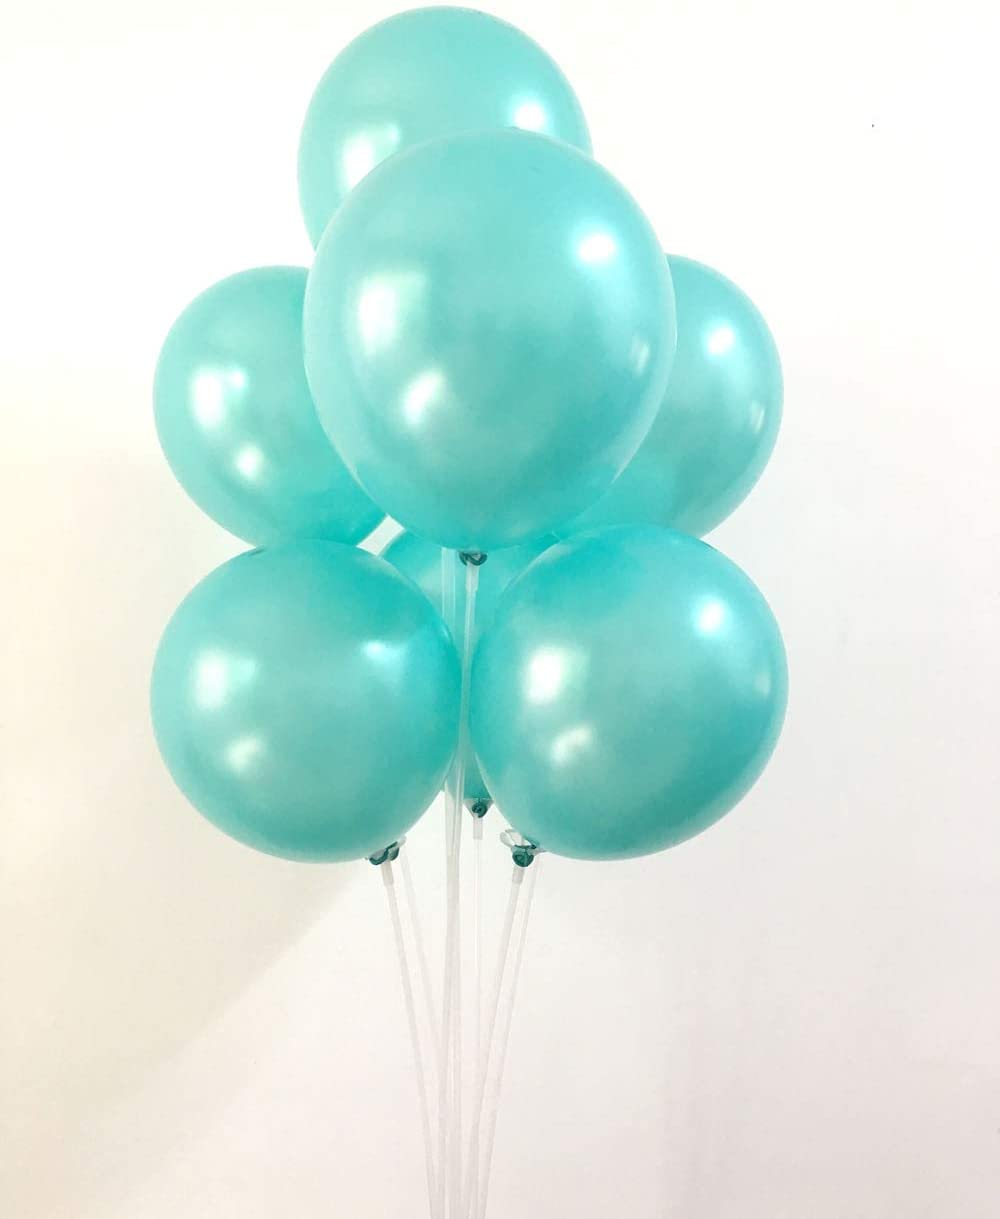 12Inch Quality Latex Balloon Party Decoration for Birthday and Events Celebration yuqinBB (Tiffany Blue)